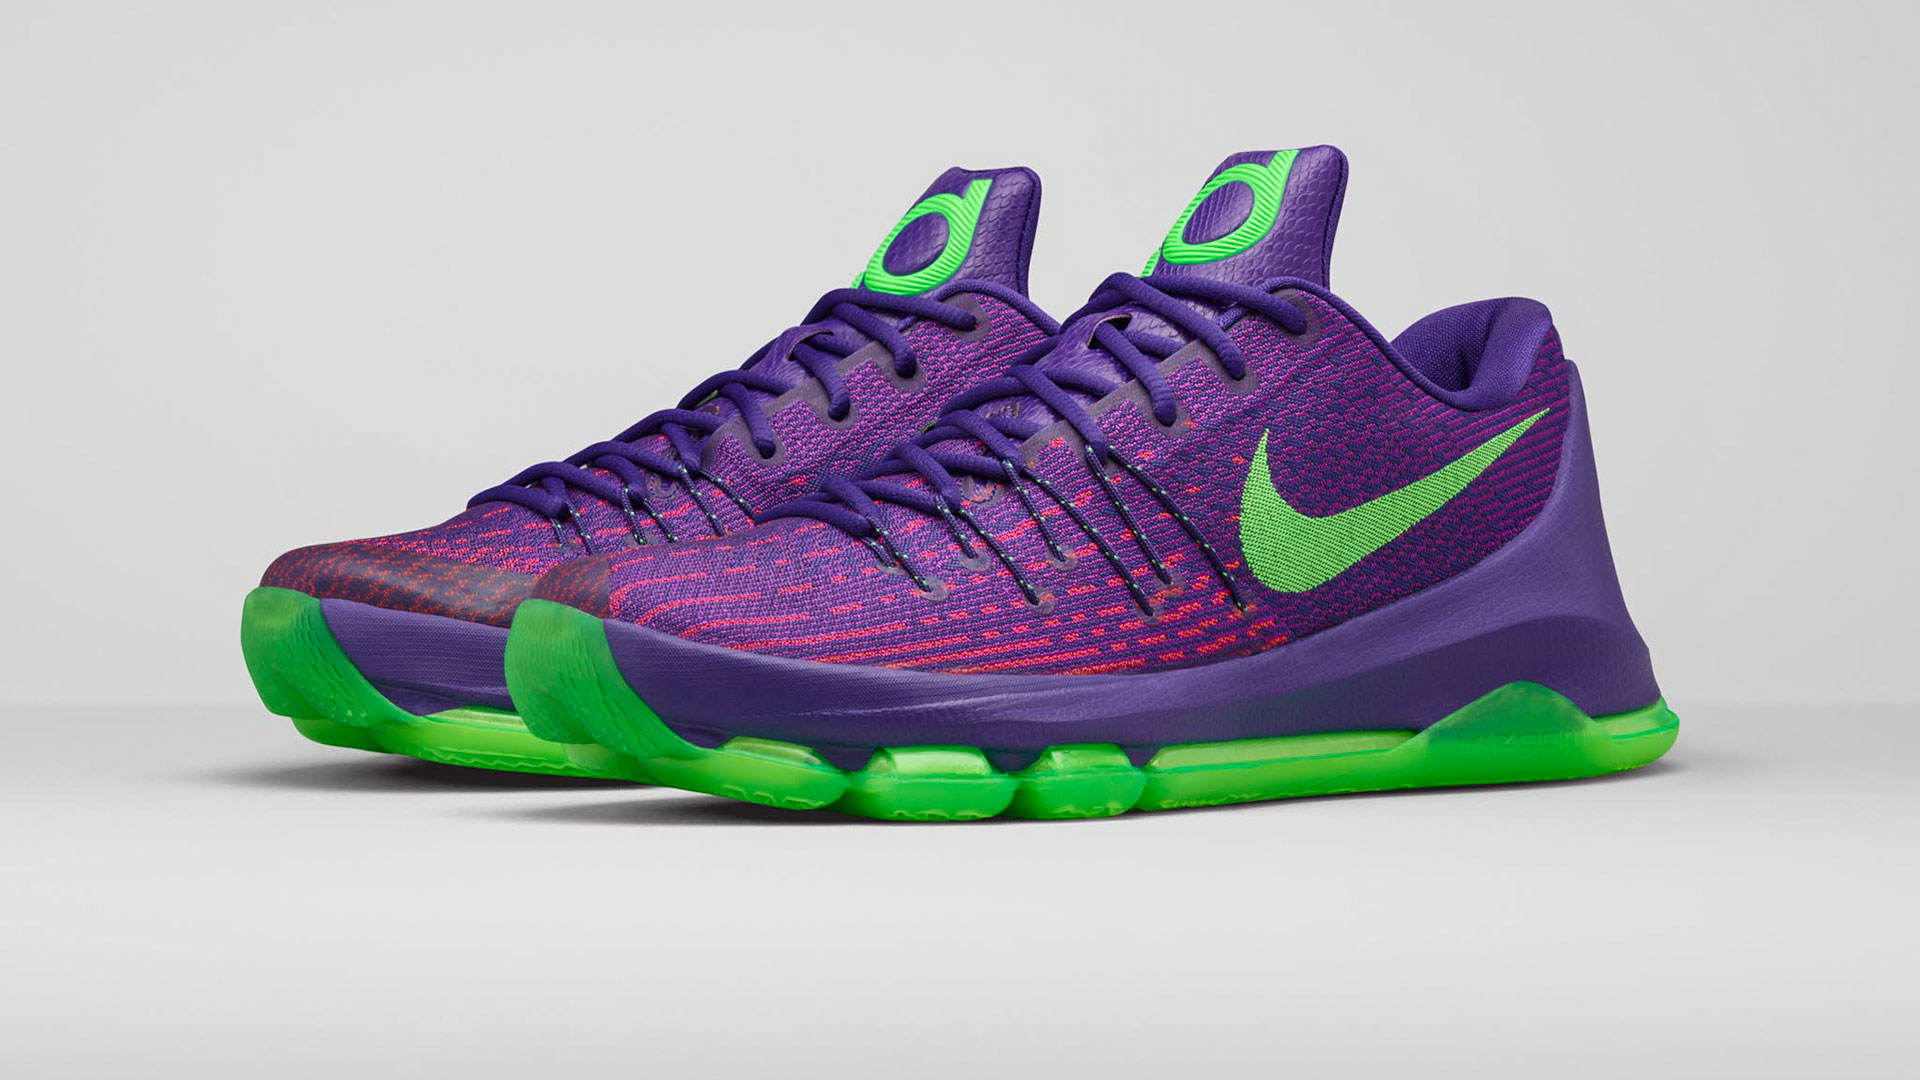 New Nike Kd Shoes